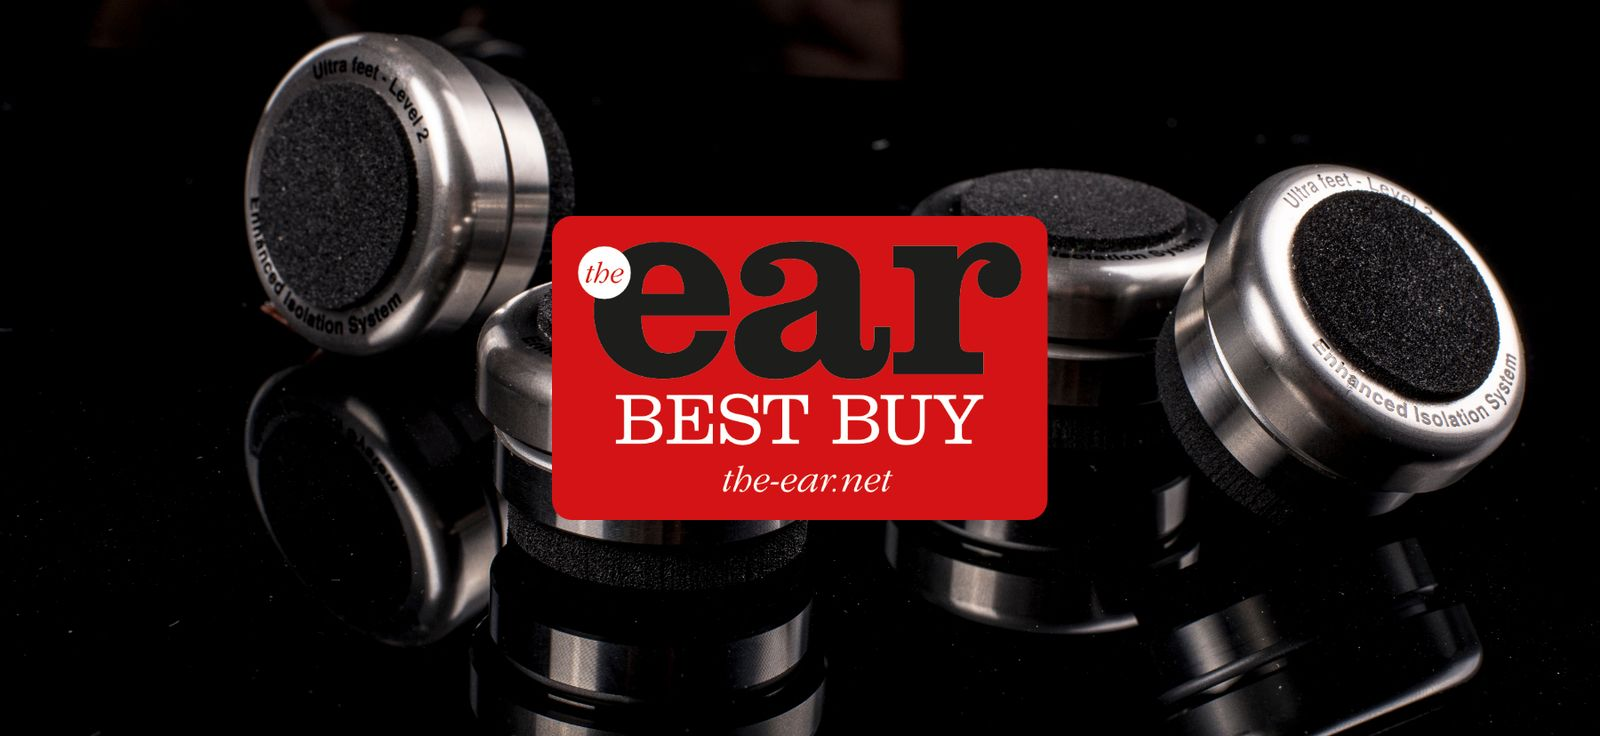 Bassocontinuo Ultra Feet awarded 'Best Buy' by 'the ear'